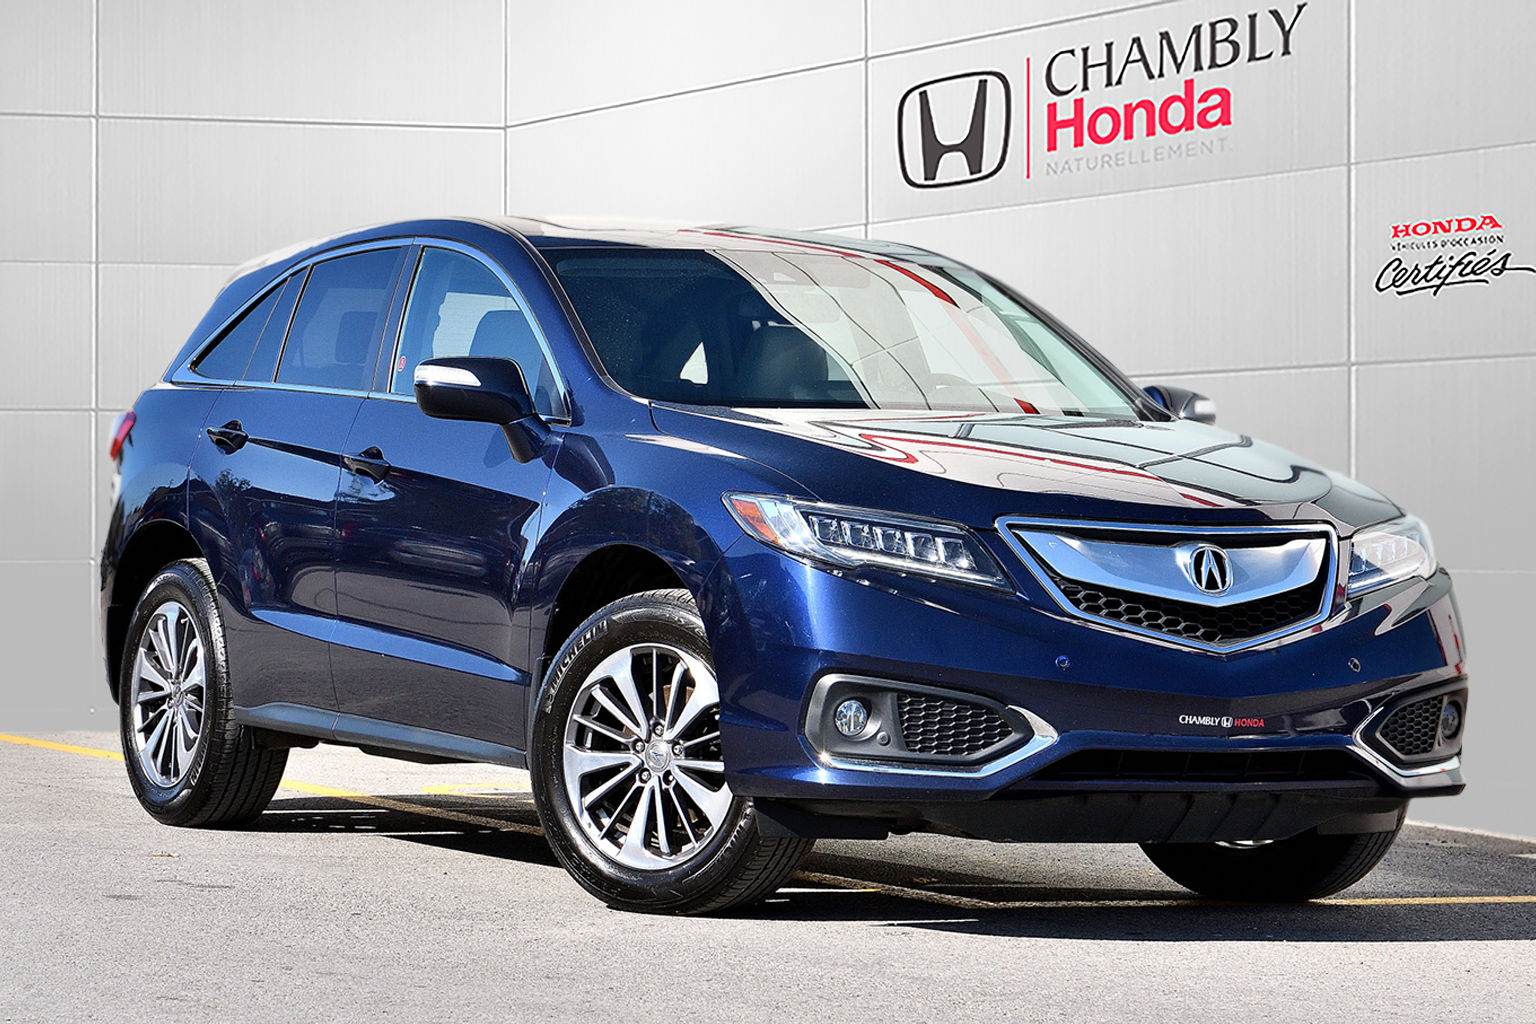 2017 Acura Rdx Elite Pneus Hiver Cuir Nav Toit Camera Used For Sale In Chambly Chambly Honda